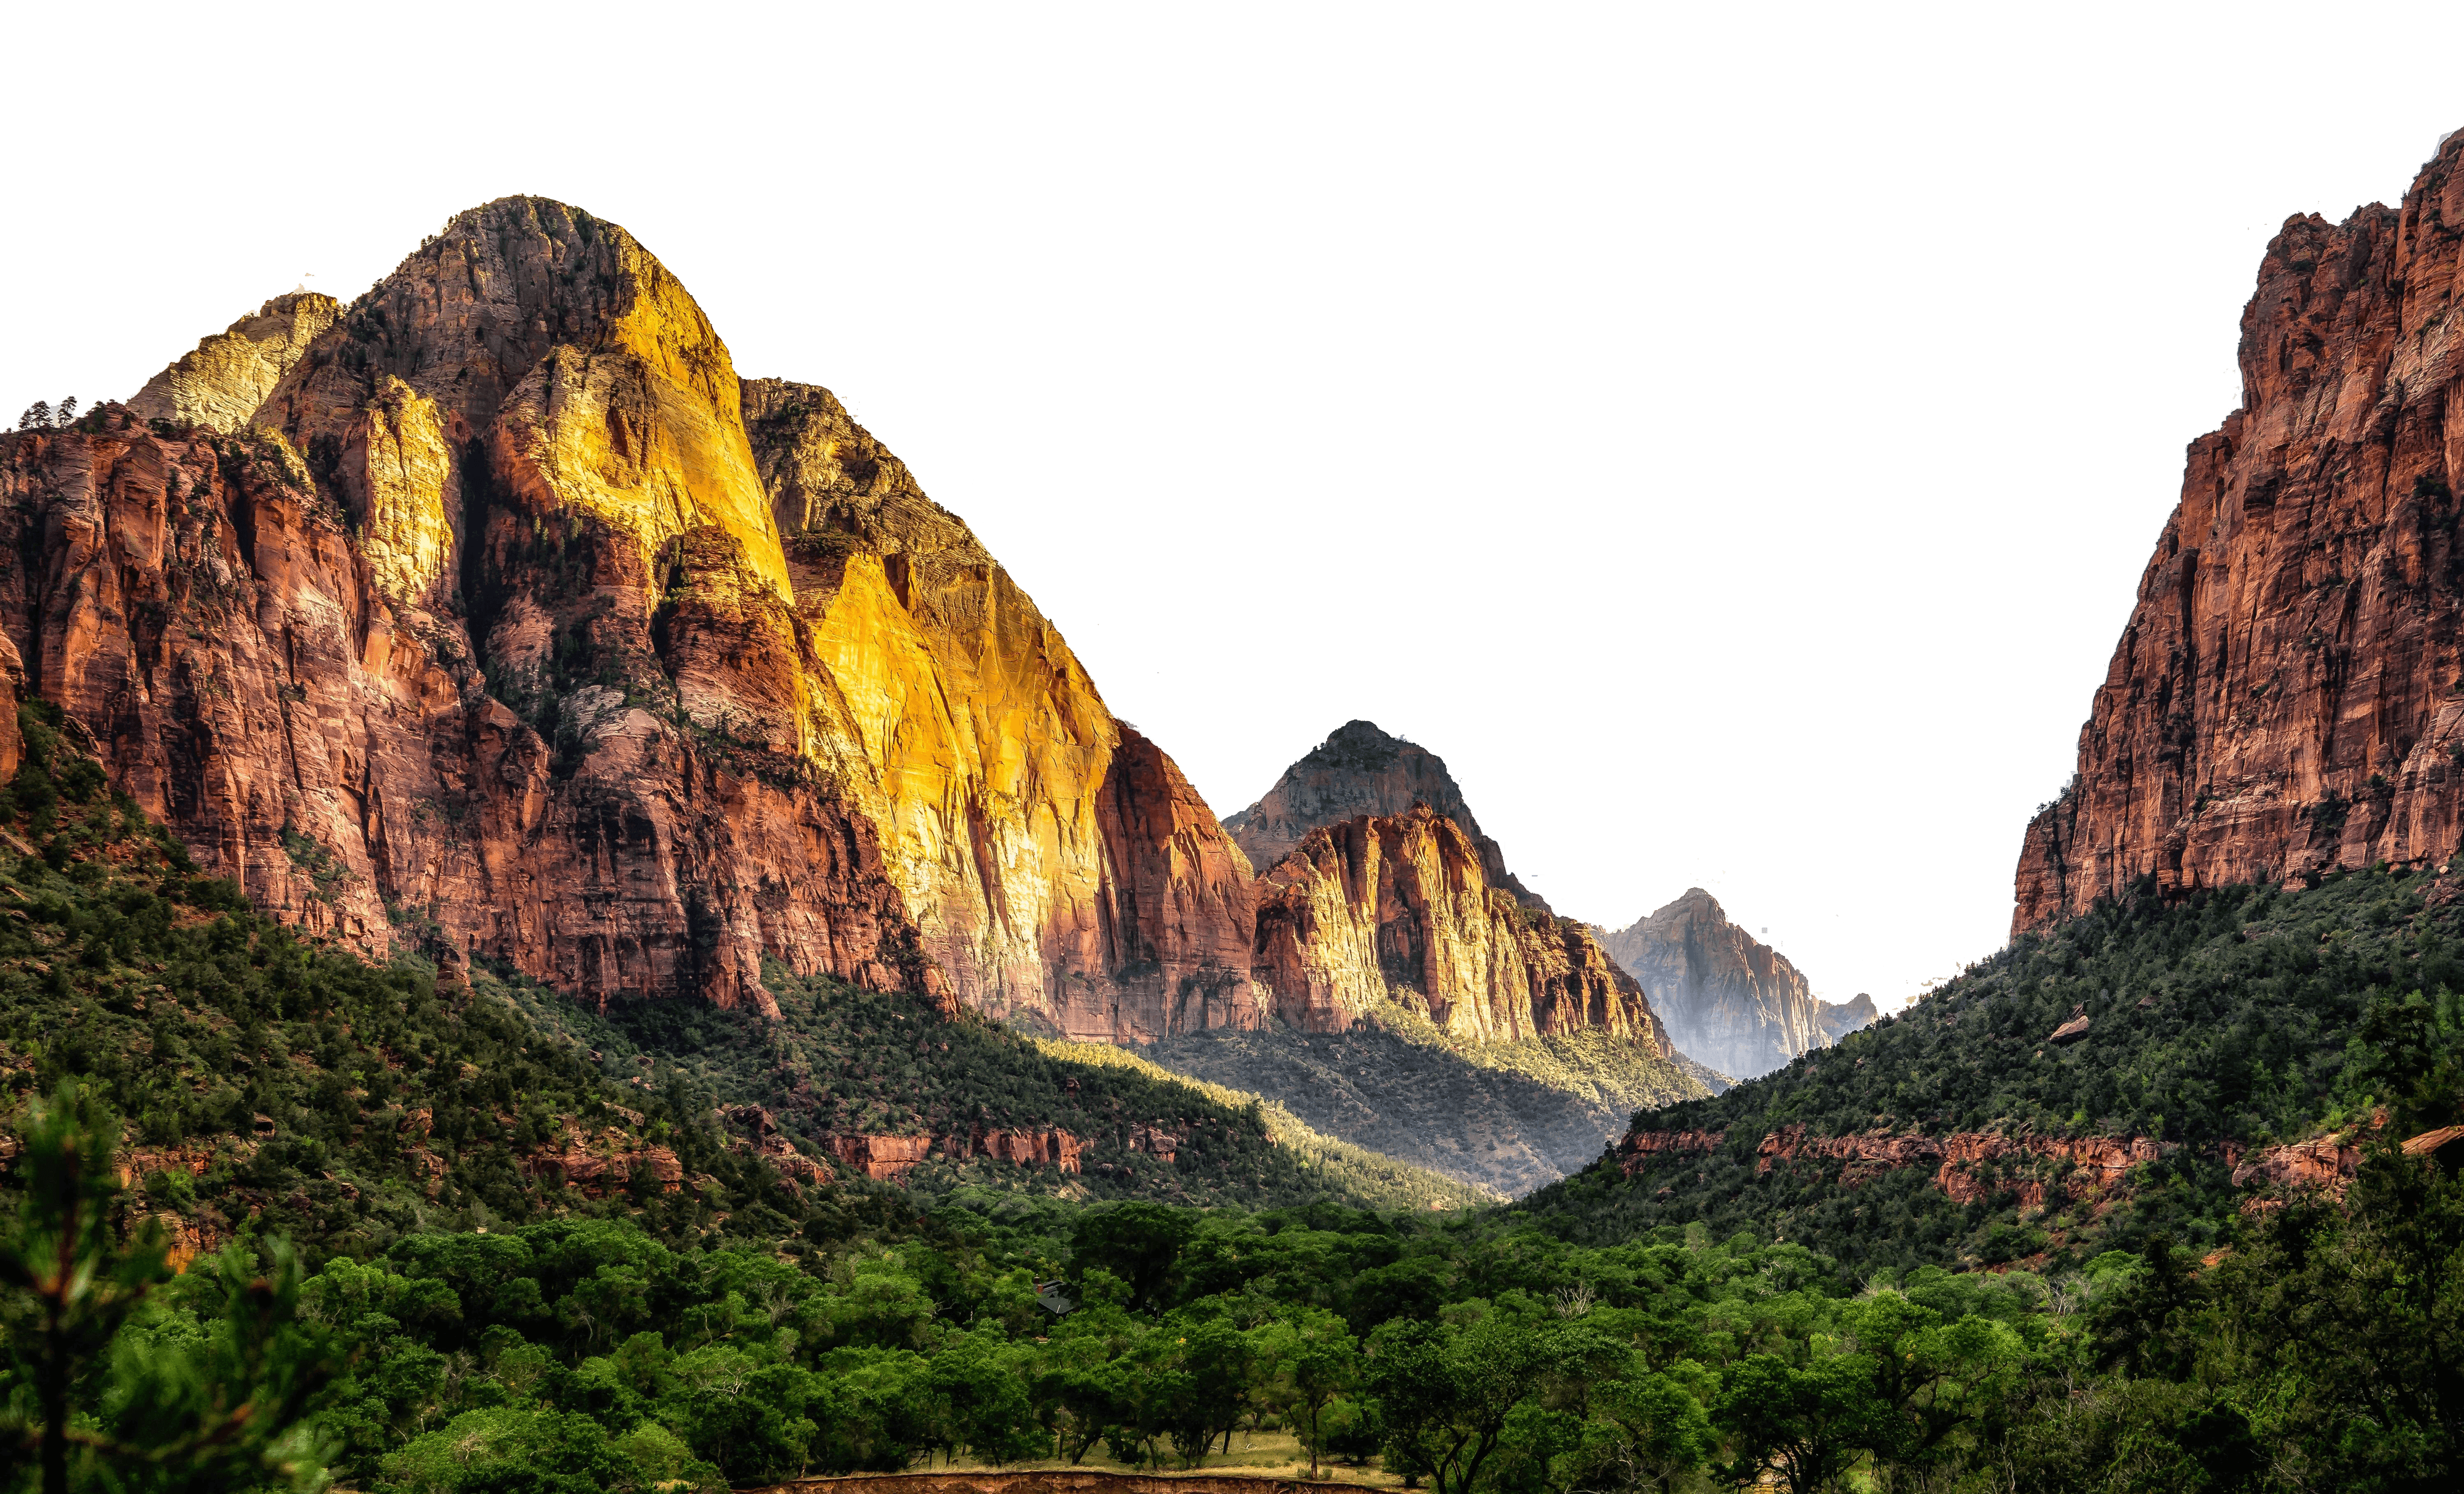 Mountains clipart nature. Rocky mountain ram images